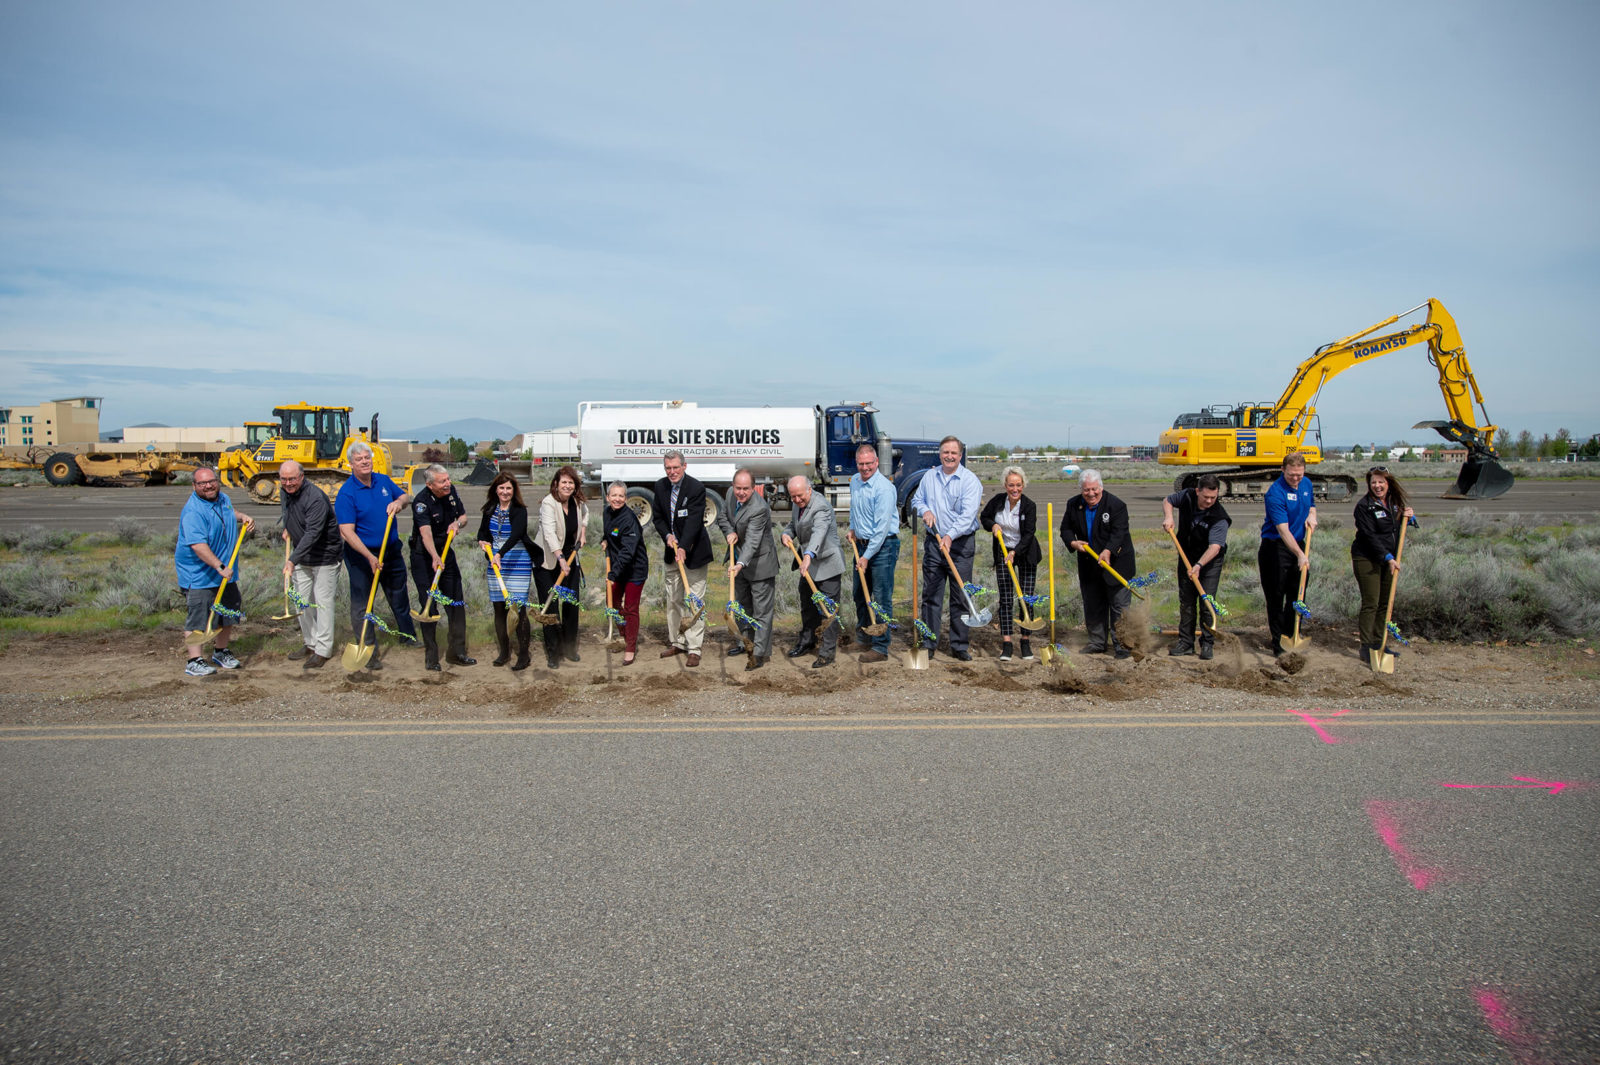 17 people break ground with construction equipment in background.